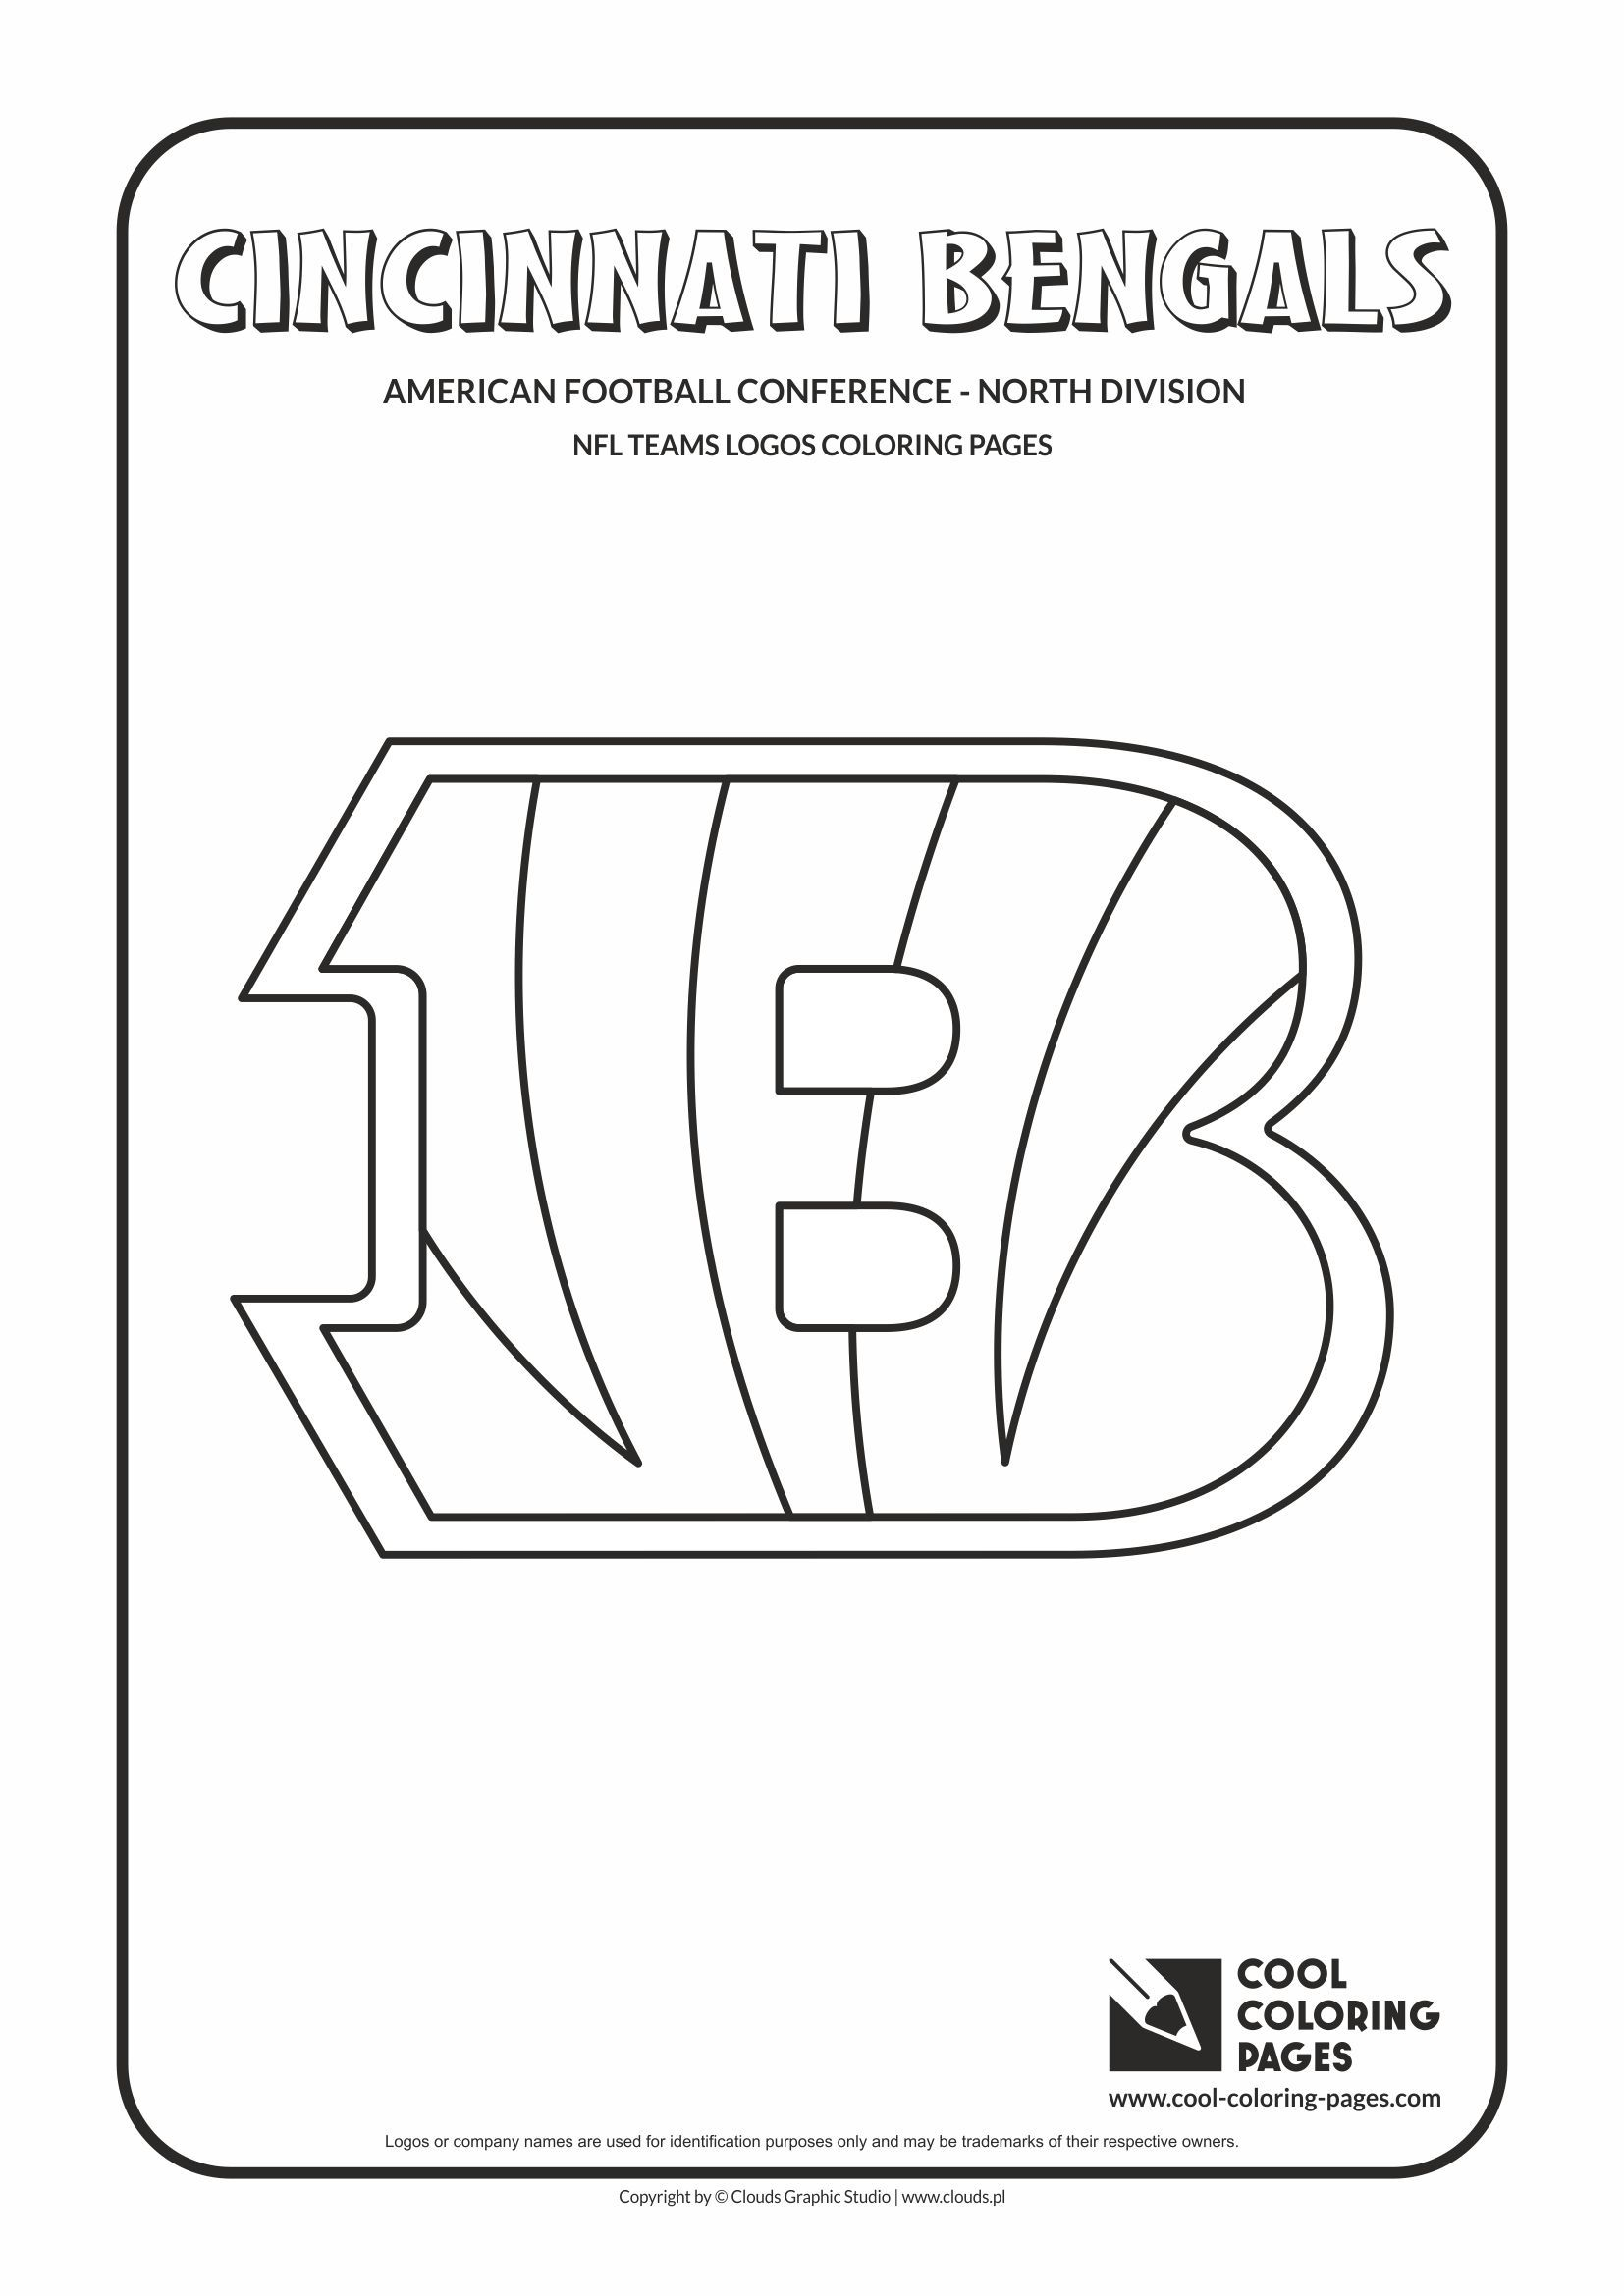 nfl helmets coloring pages Collection-Cool Coloring Pages NFL American Football Clubs Logos American Football… 7-a